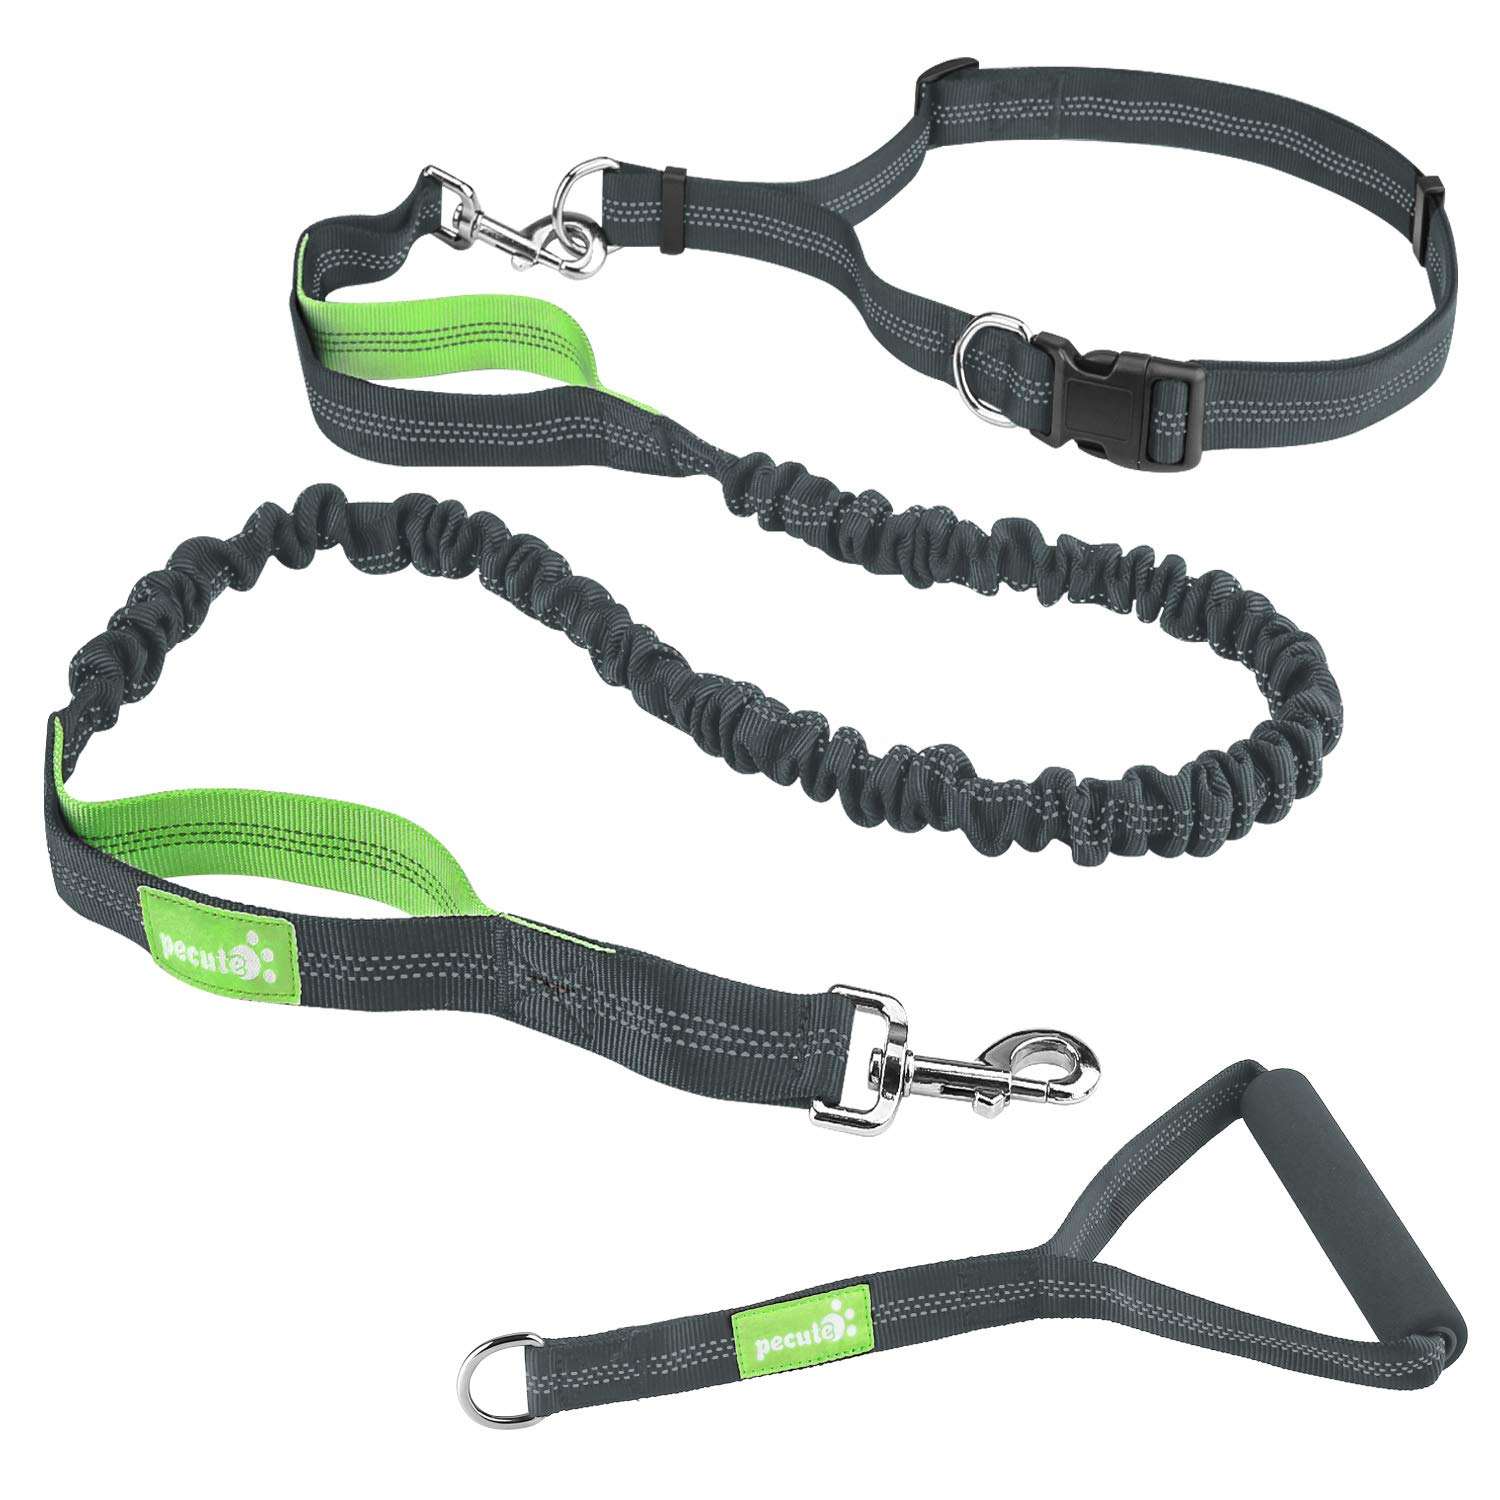 """Pecute Hands Free Dog Leash with Extra Foam Handle - Extendable Bungee with Reflective Stitching - Waist Belt Adjustable Fits up to 48"""" Waist - For Jogging, Running, Hiking (Grey and Green)"""